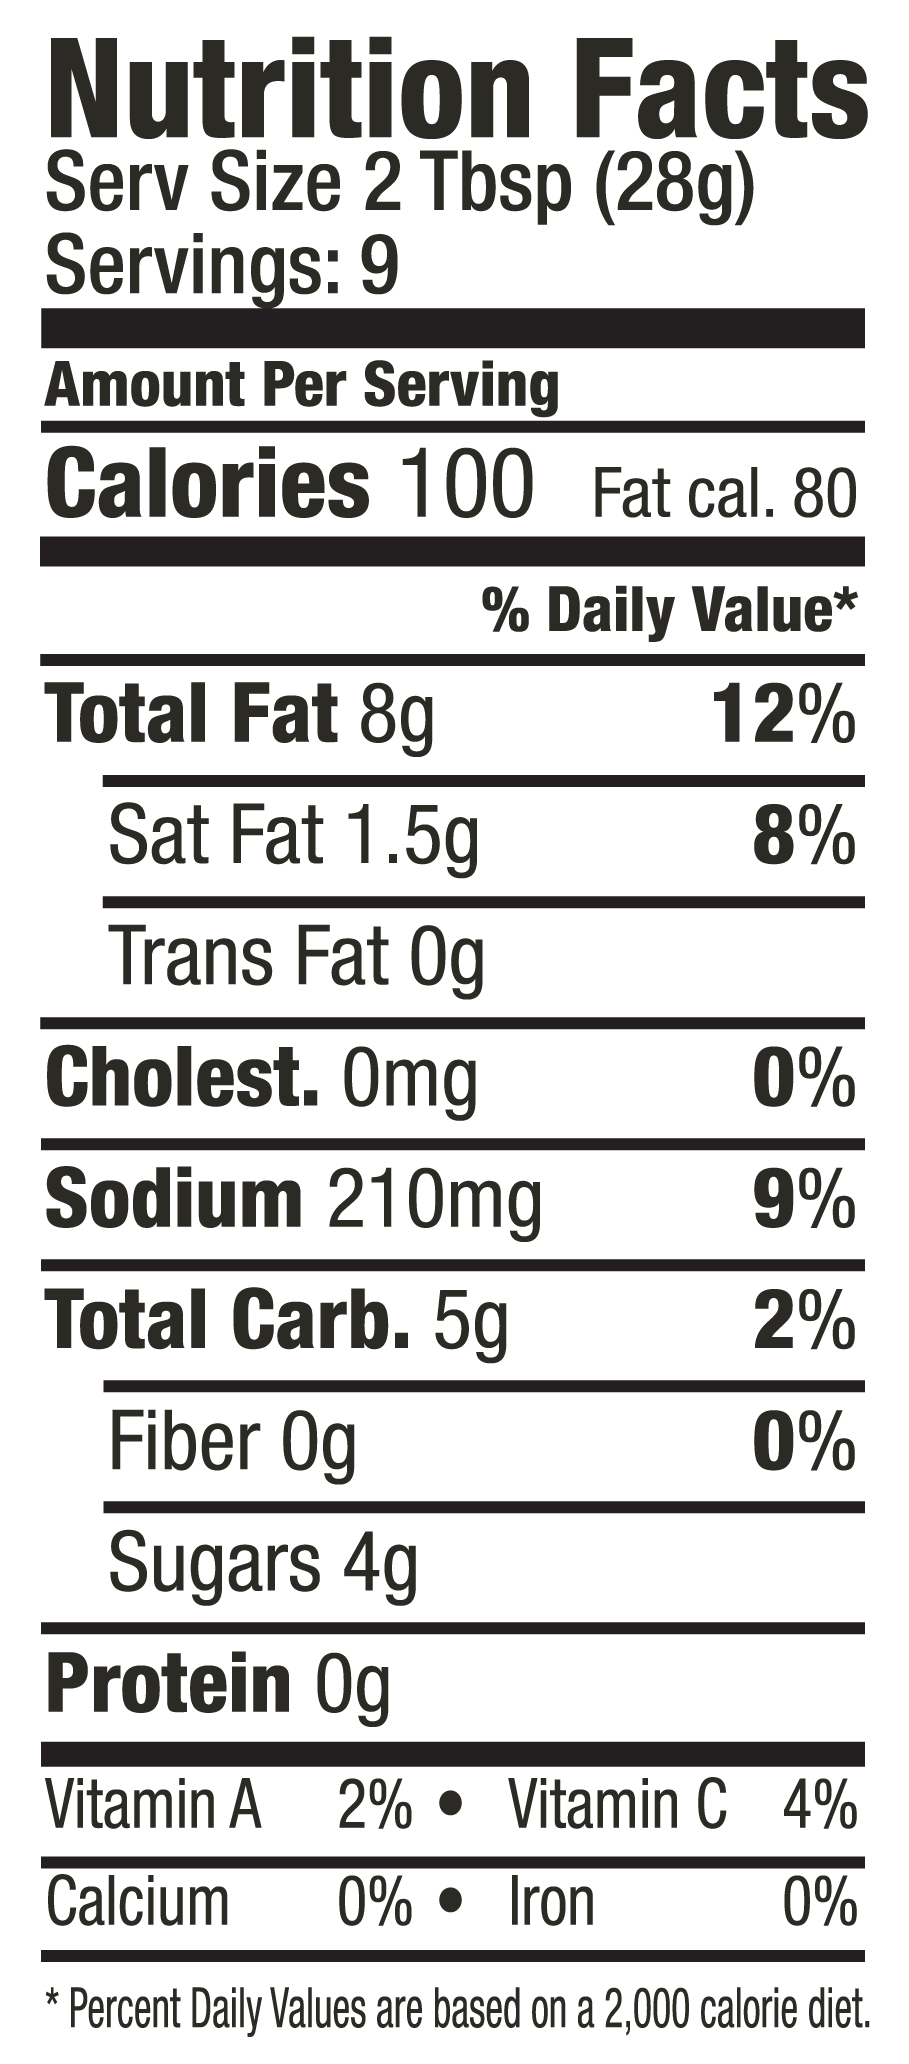 NutritionalFacts_OrangeGinger_2018.png